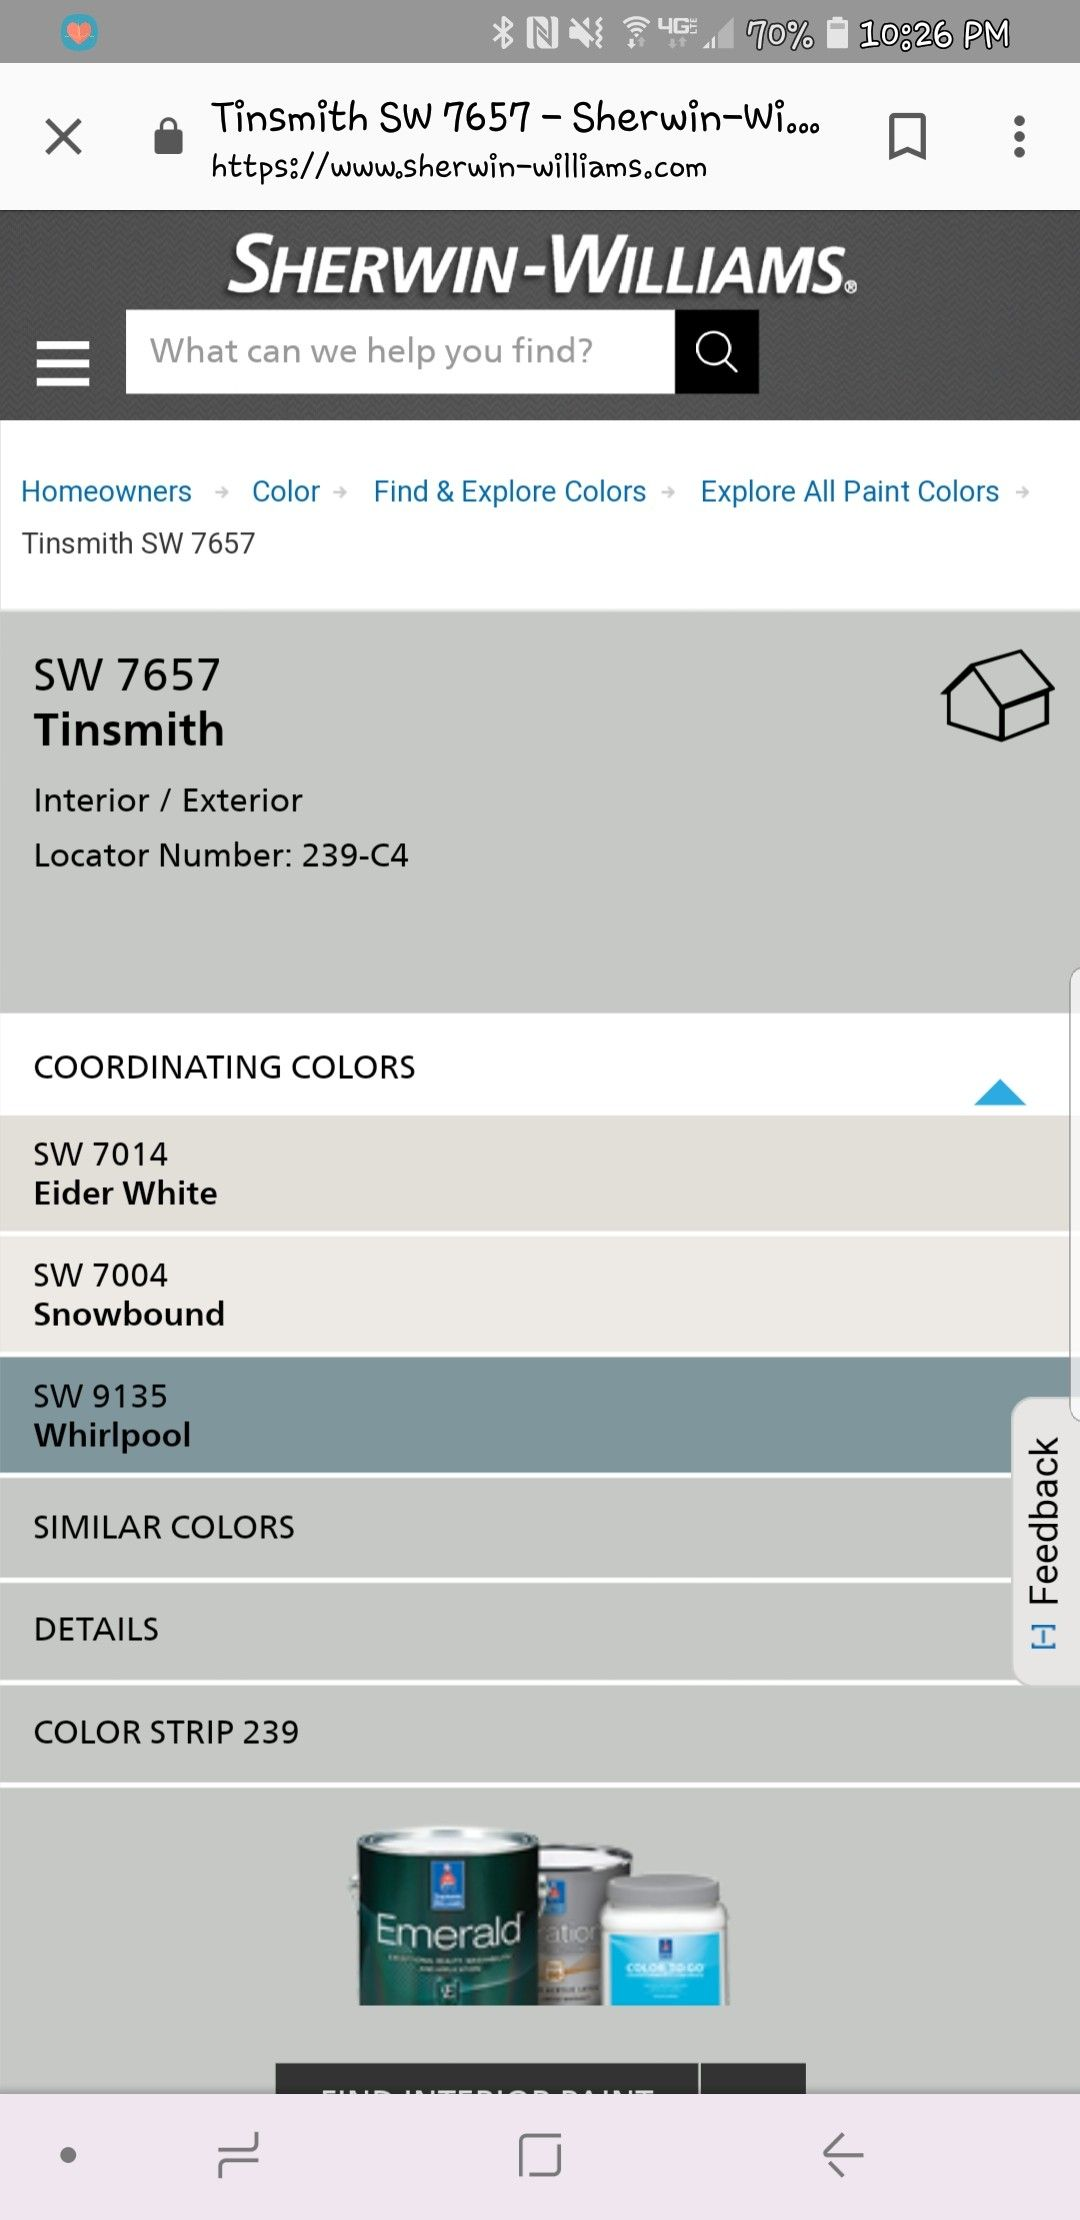 Tinsmith Paint Color Sherwin Williams Paint Colors For Home Interior Wall Colors Paint Colors